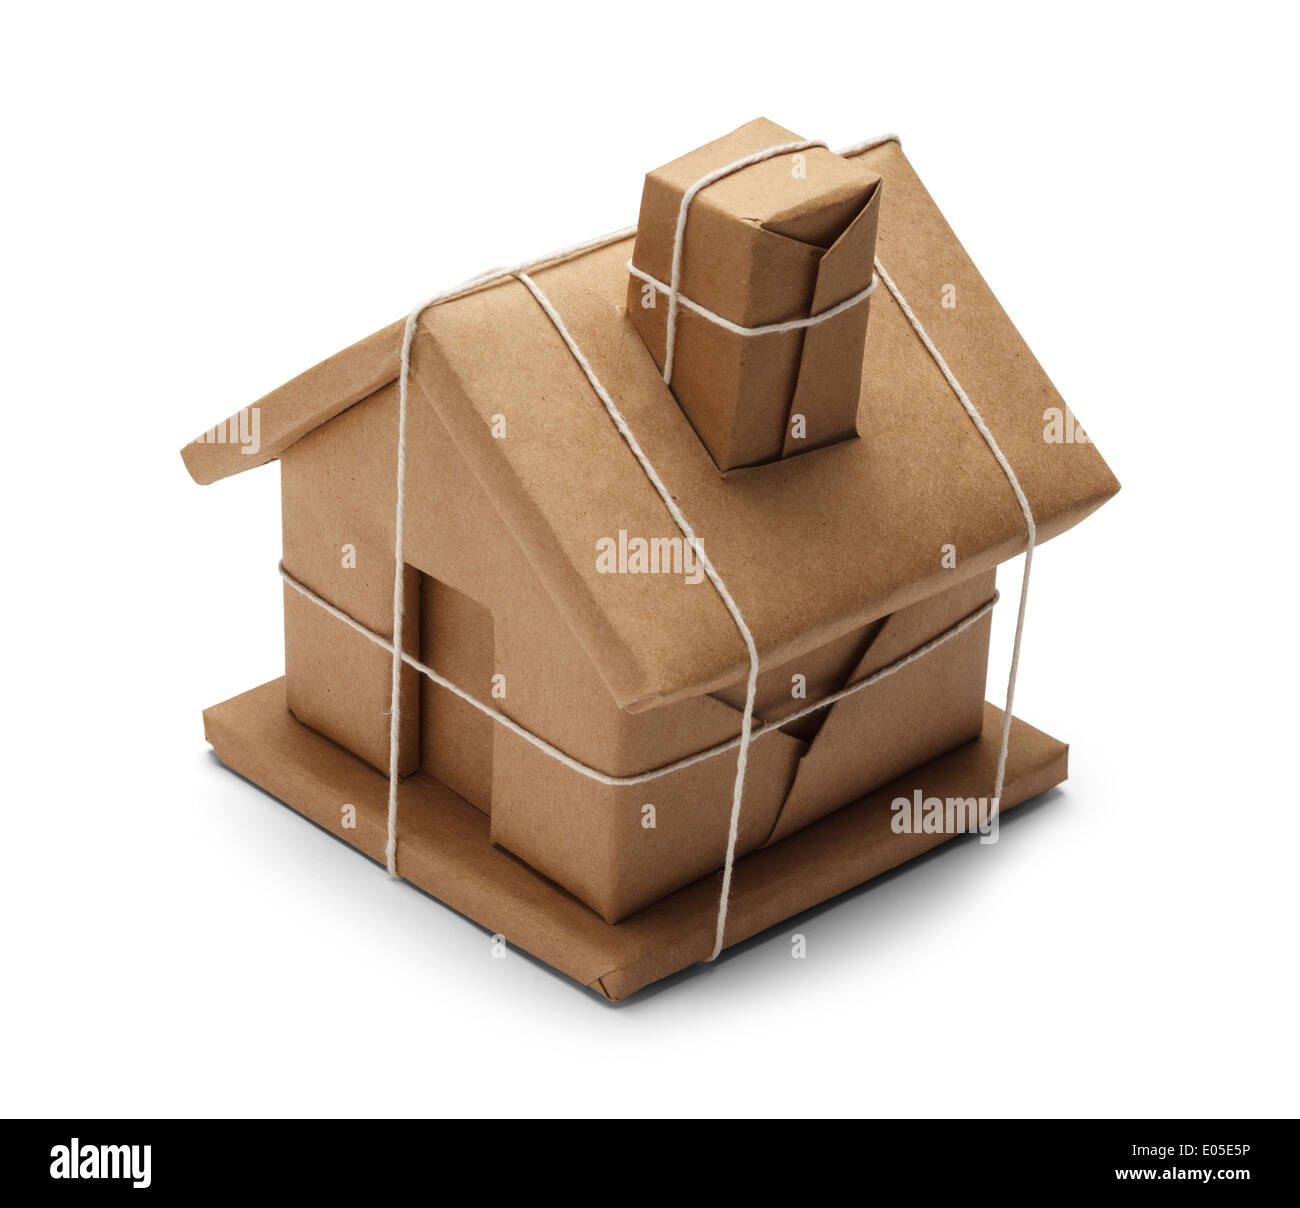 House Wrapped up In Brown Paper And String rope Isolated on White Background. - Stock Image